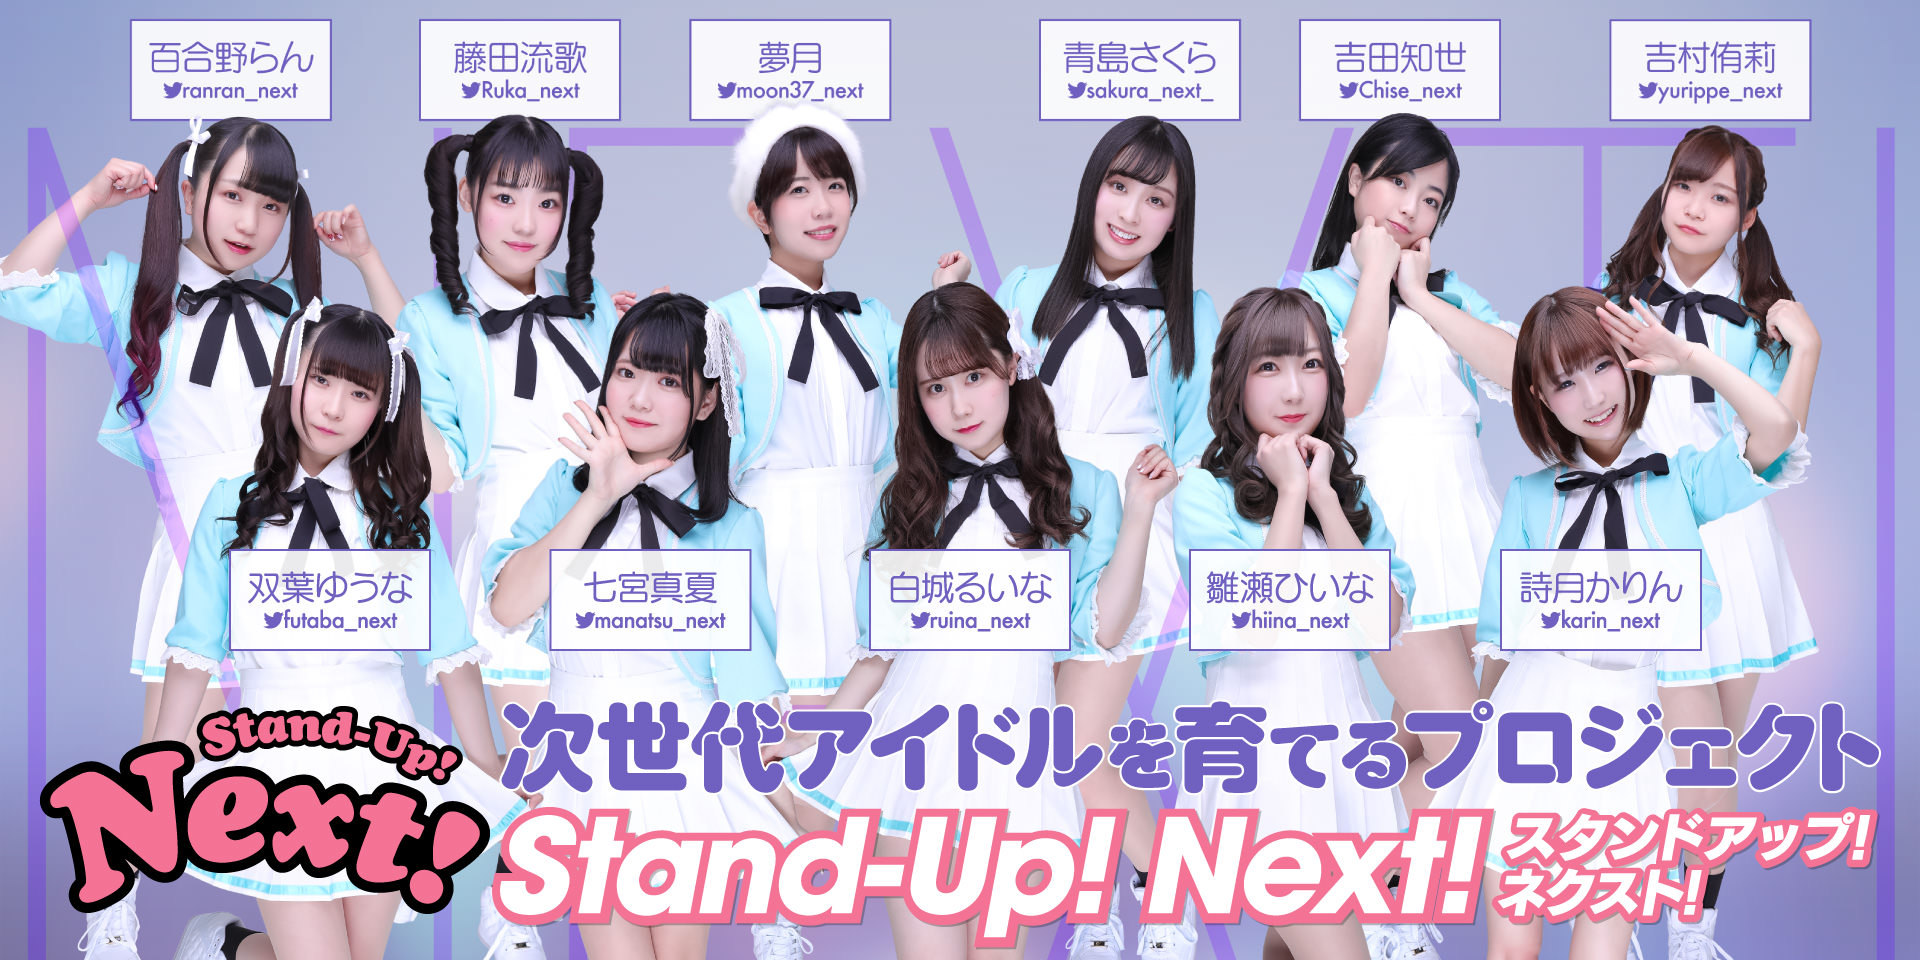 Stand-Up! Next!プロフィール